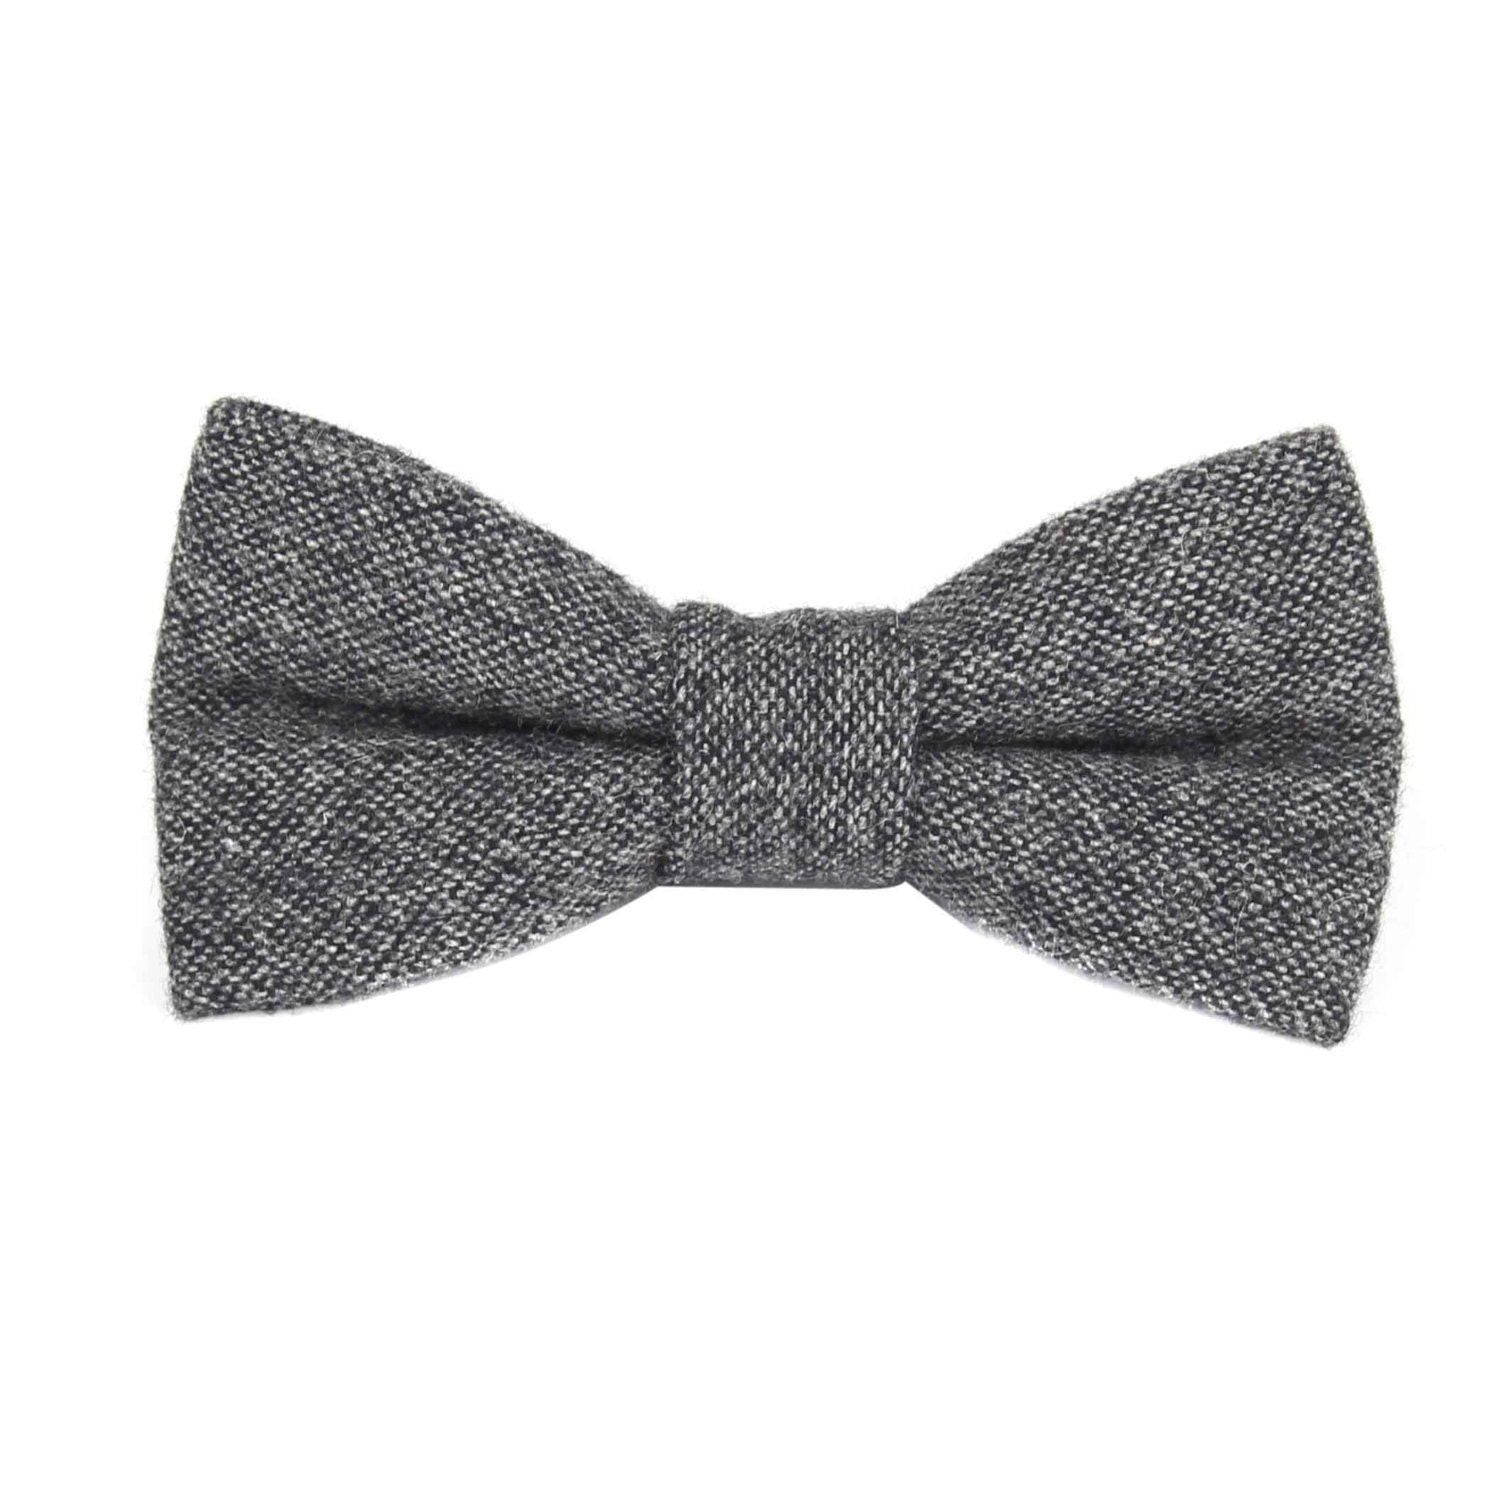 Shop puraconga.ml for the man who cares about the smallest details in his wardrobe. Our selection of gray bow ties is filled with classic styles. Free shipping and returns on .